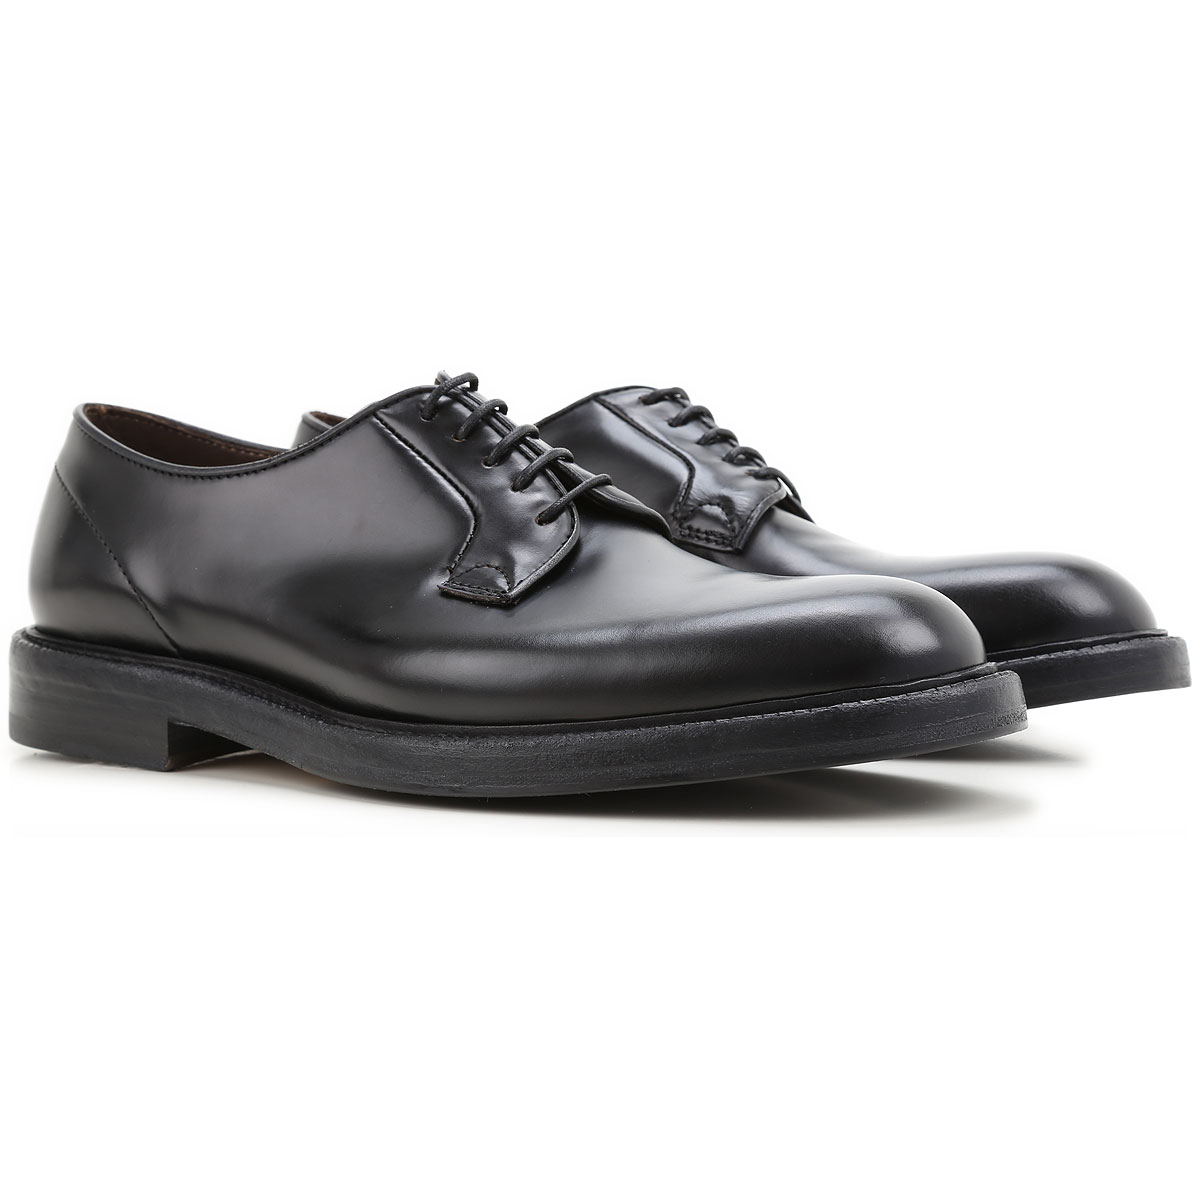 Image of Green George Brogue Shoes, Black, Leather, 2017, 10 11 8 8.5